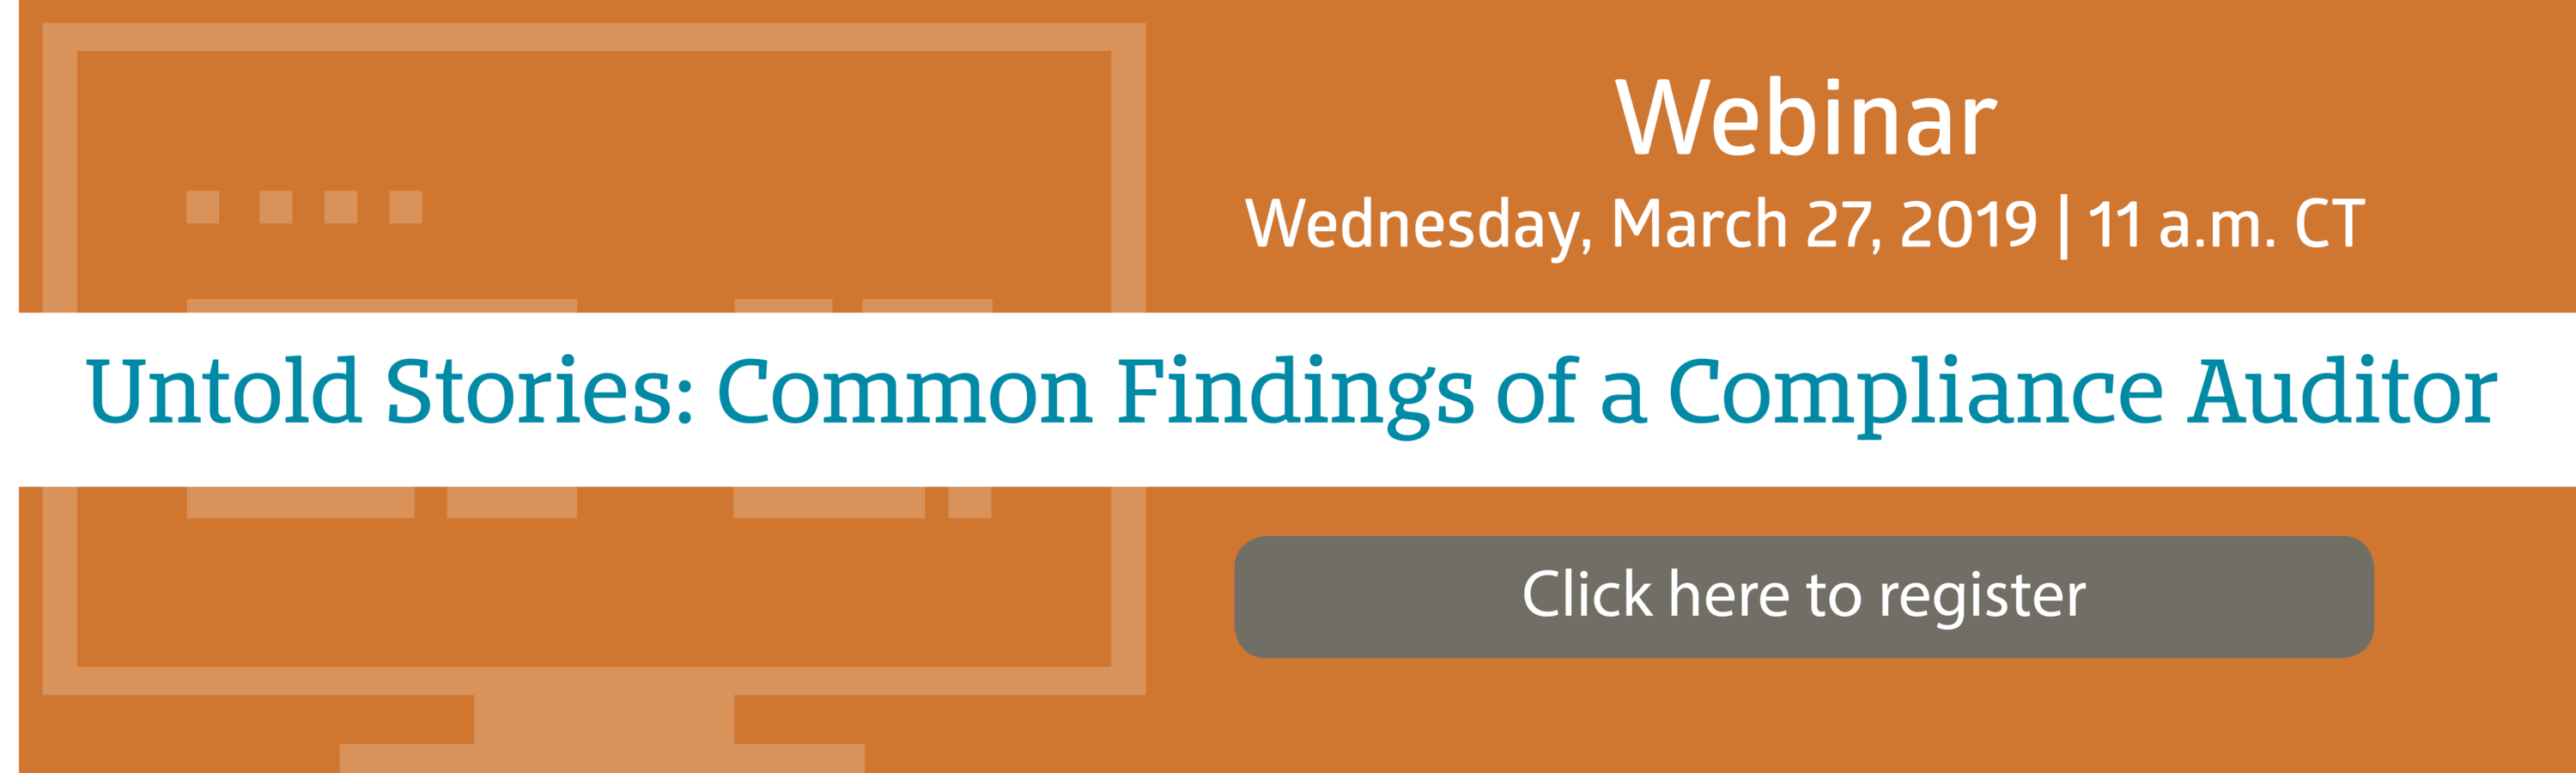 Webinar - Untold Stories: Common Findings of a Compliance Auditor